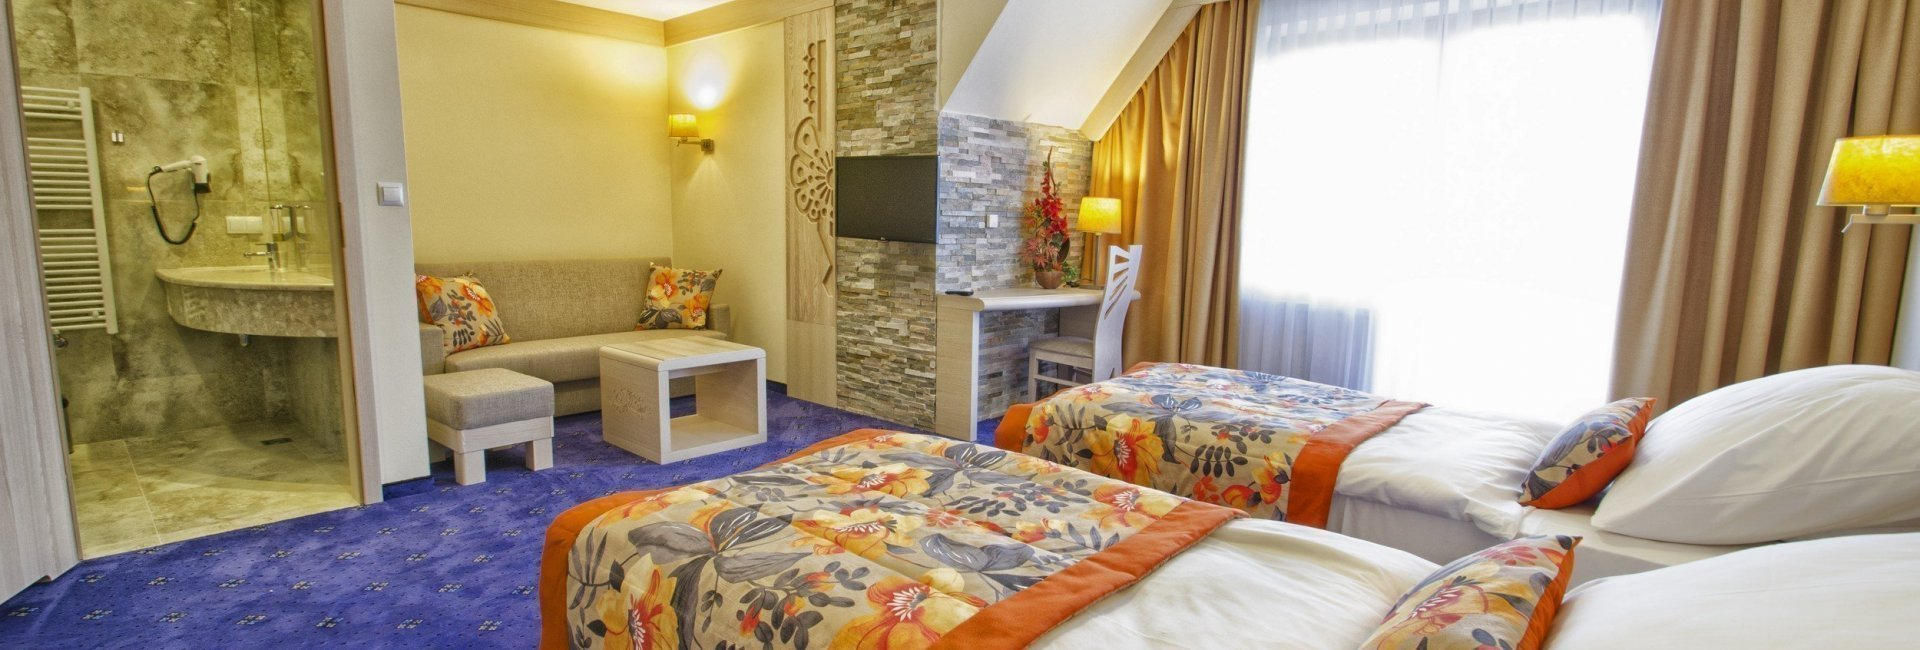 Lux Premium double room